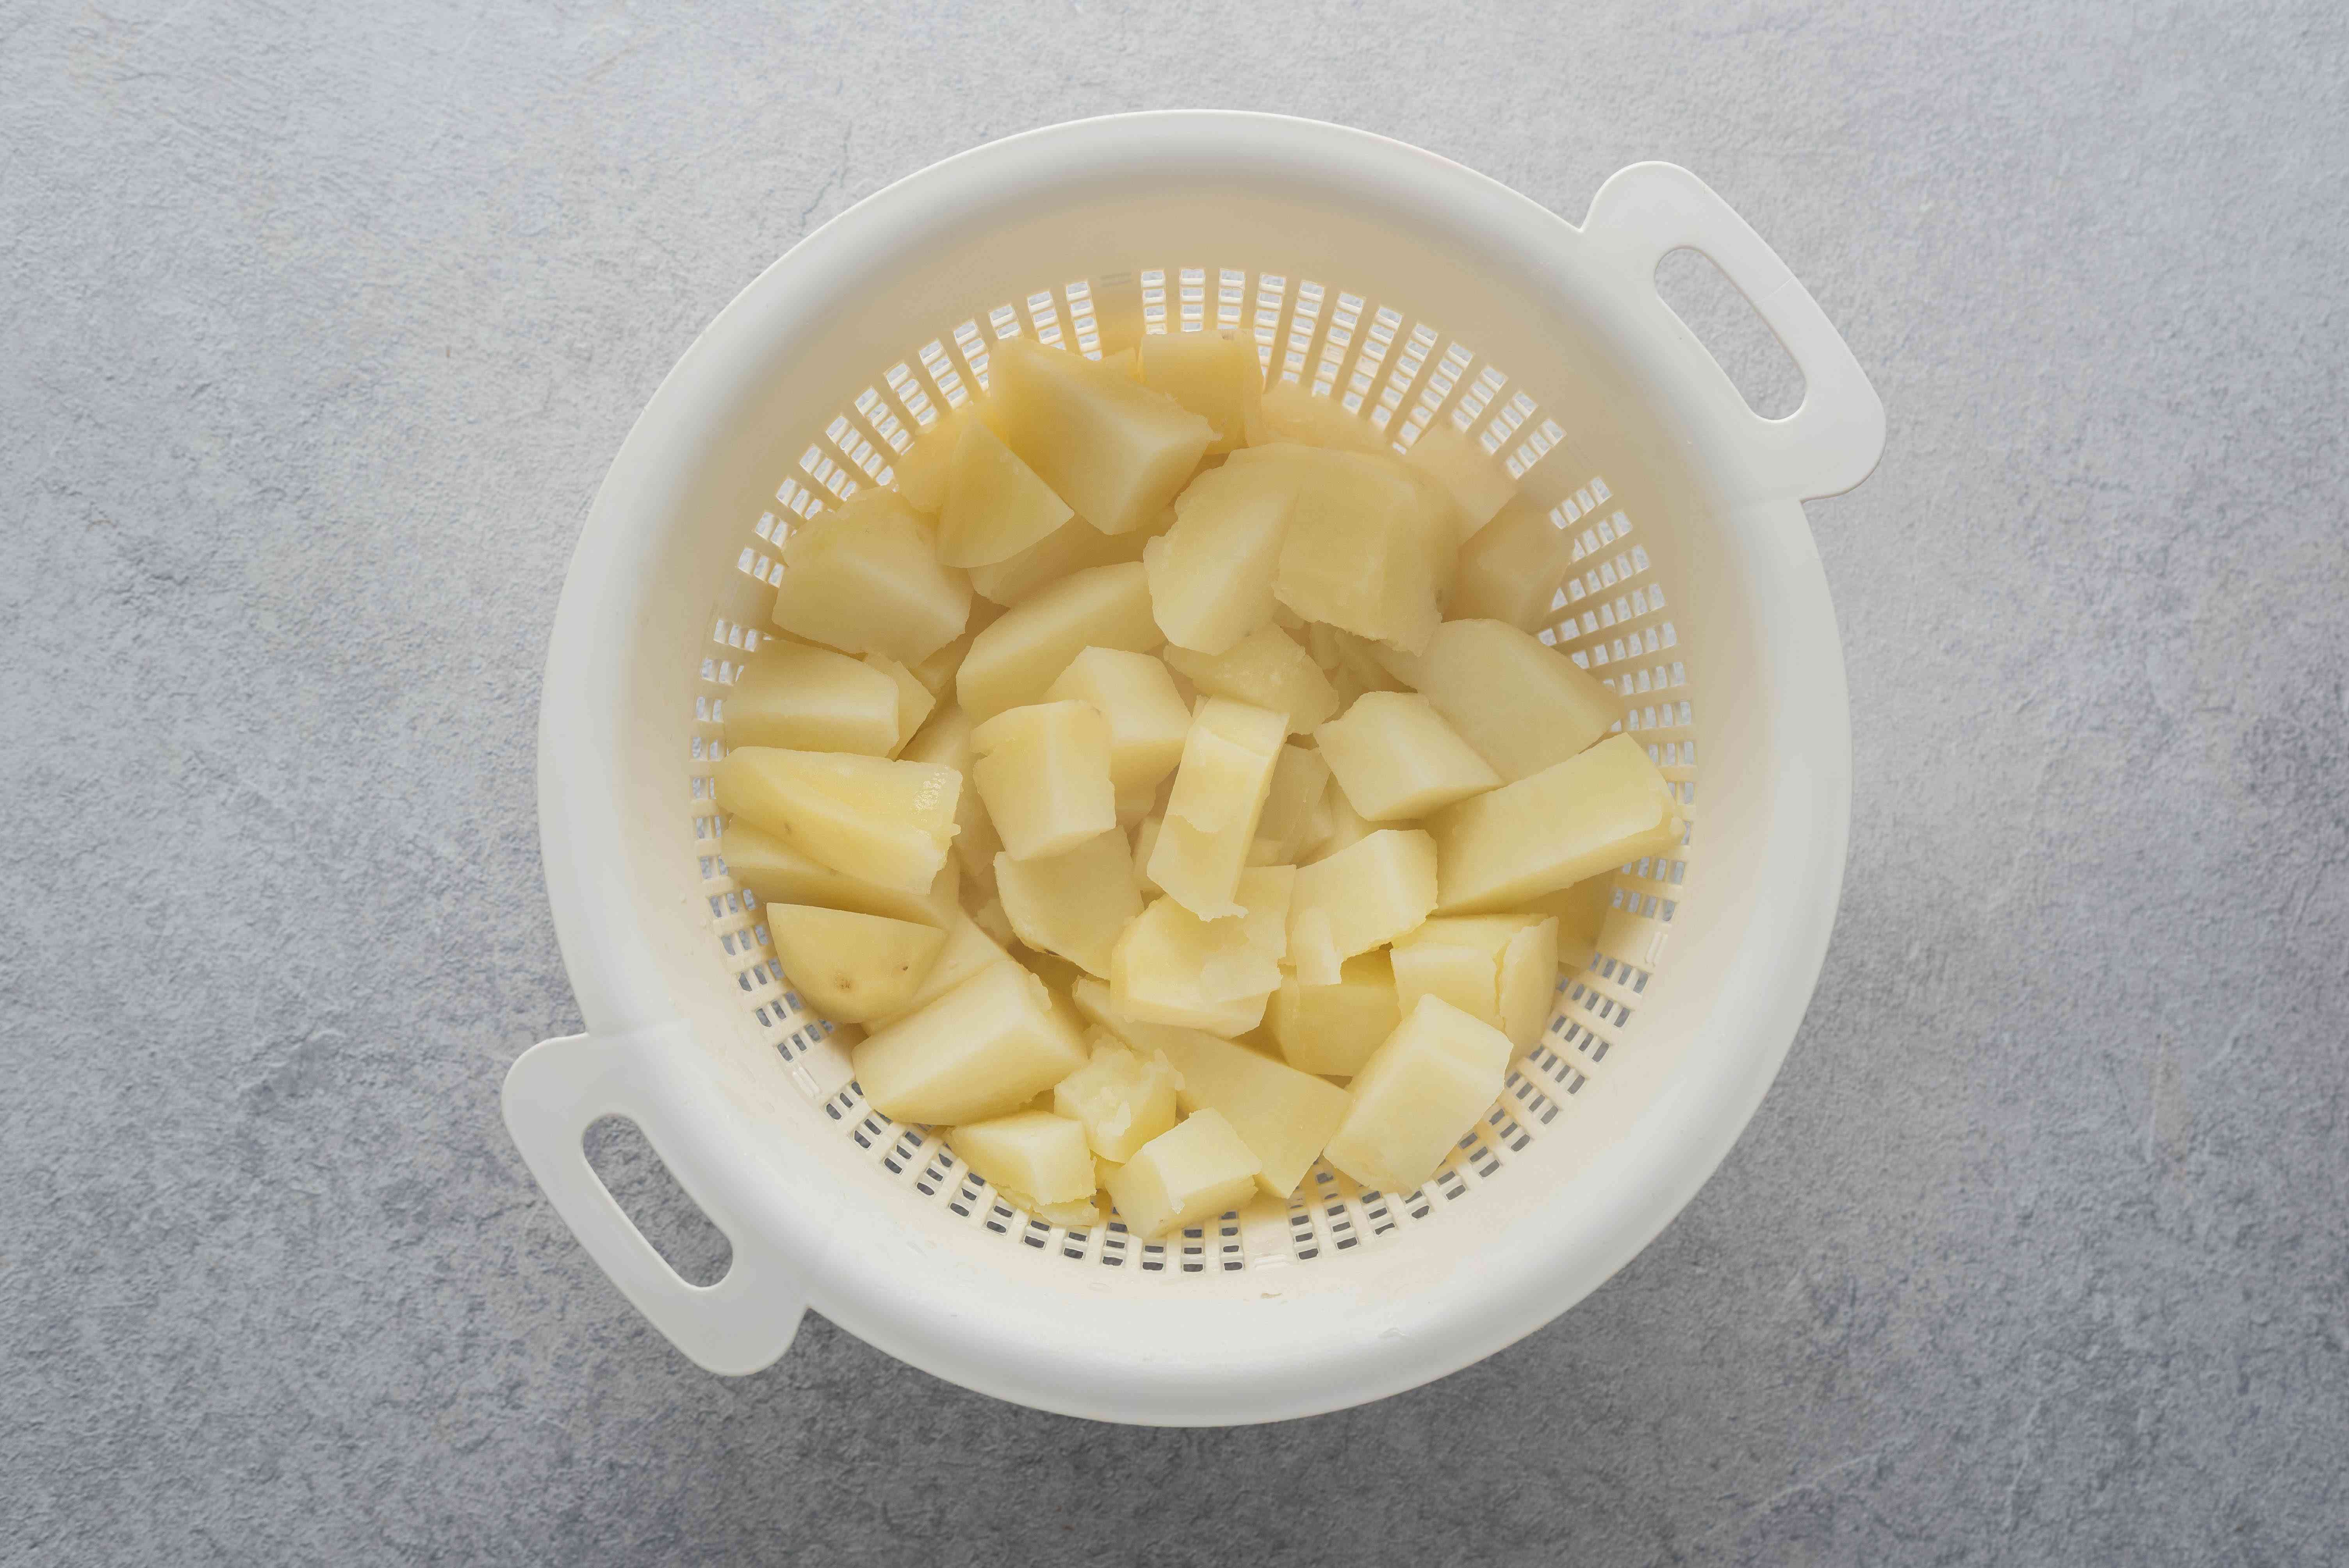 drain the potatoes in a colander